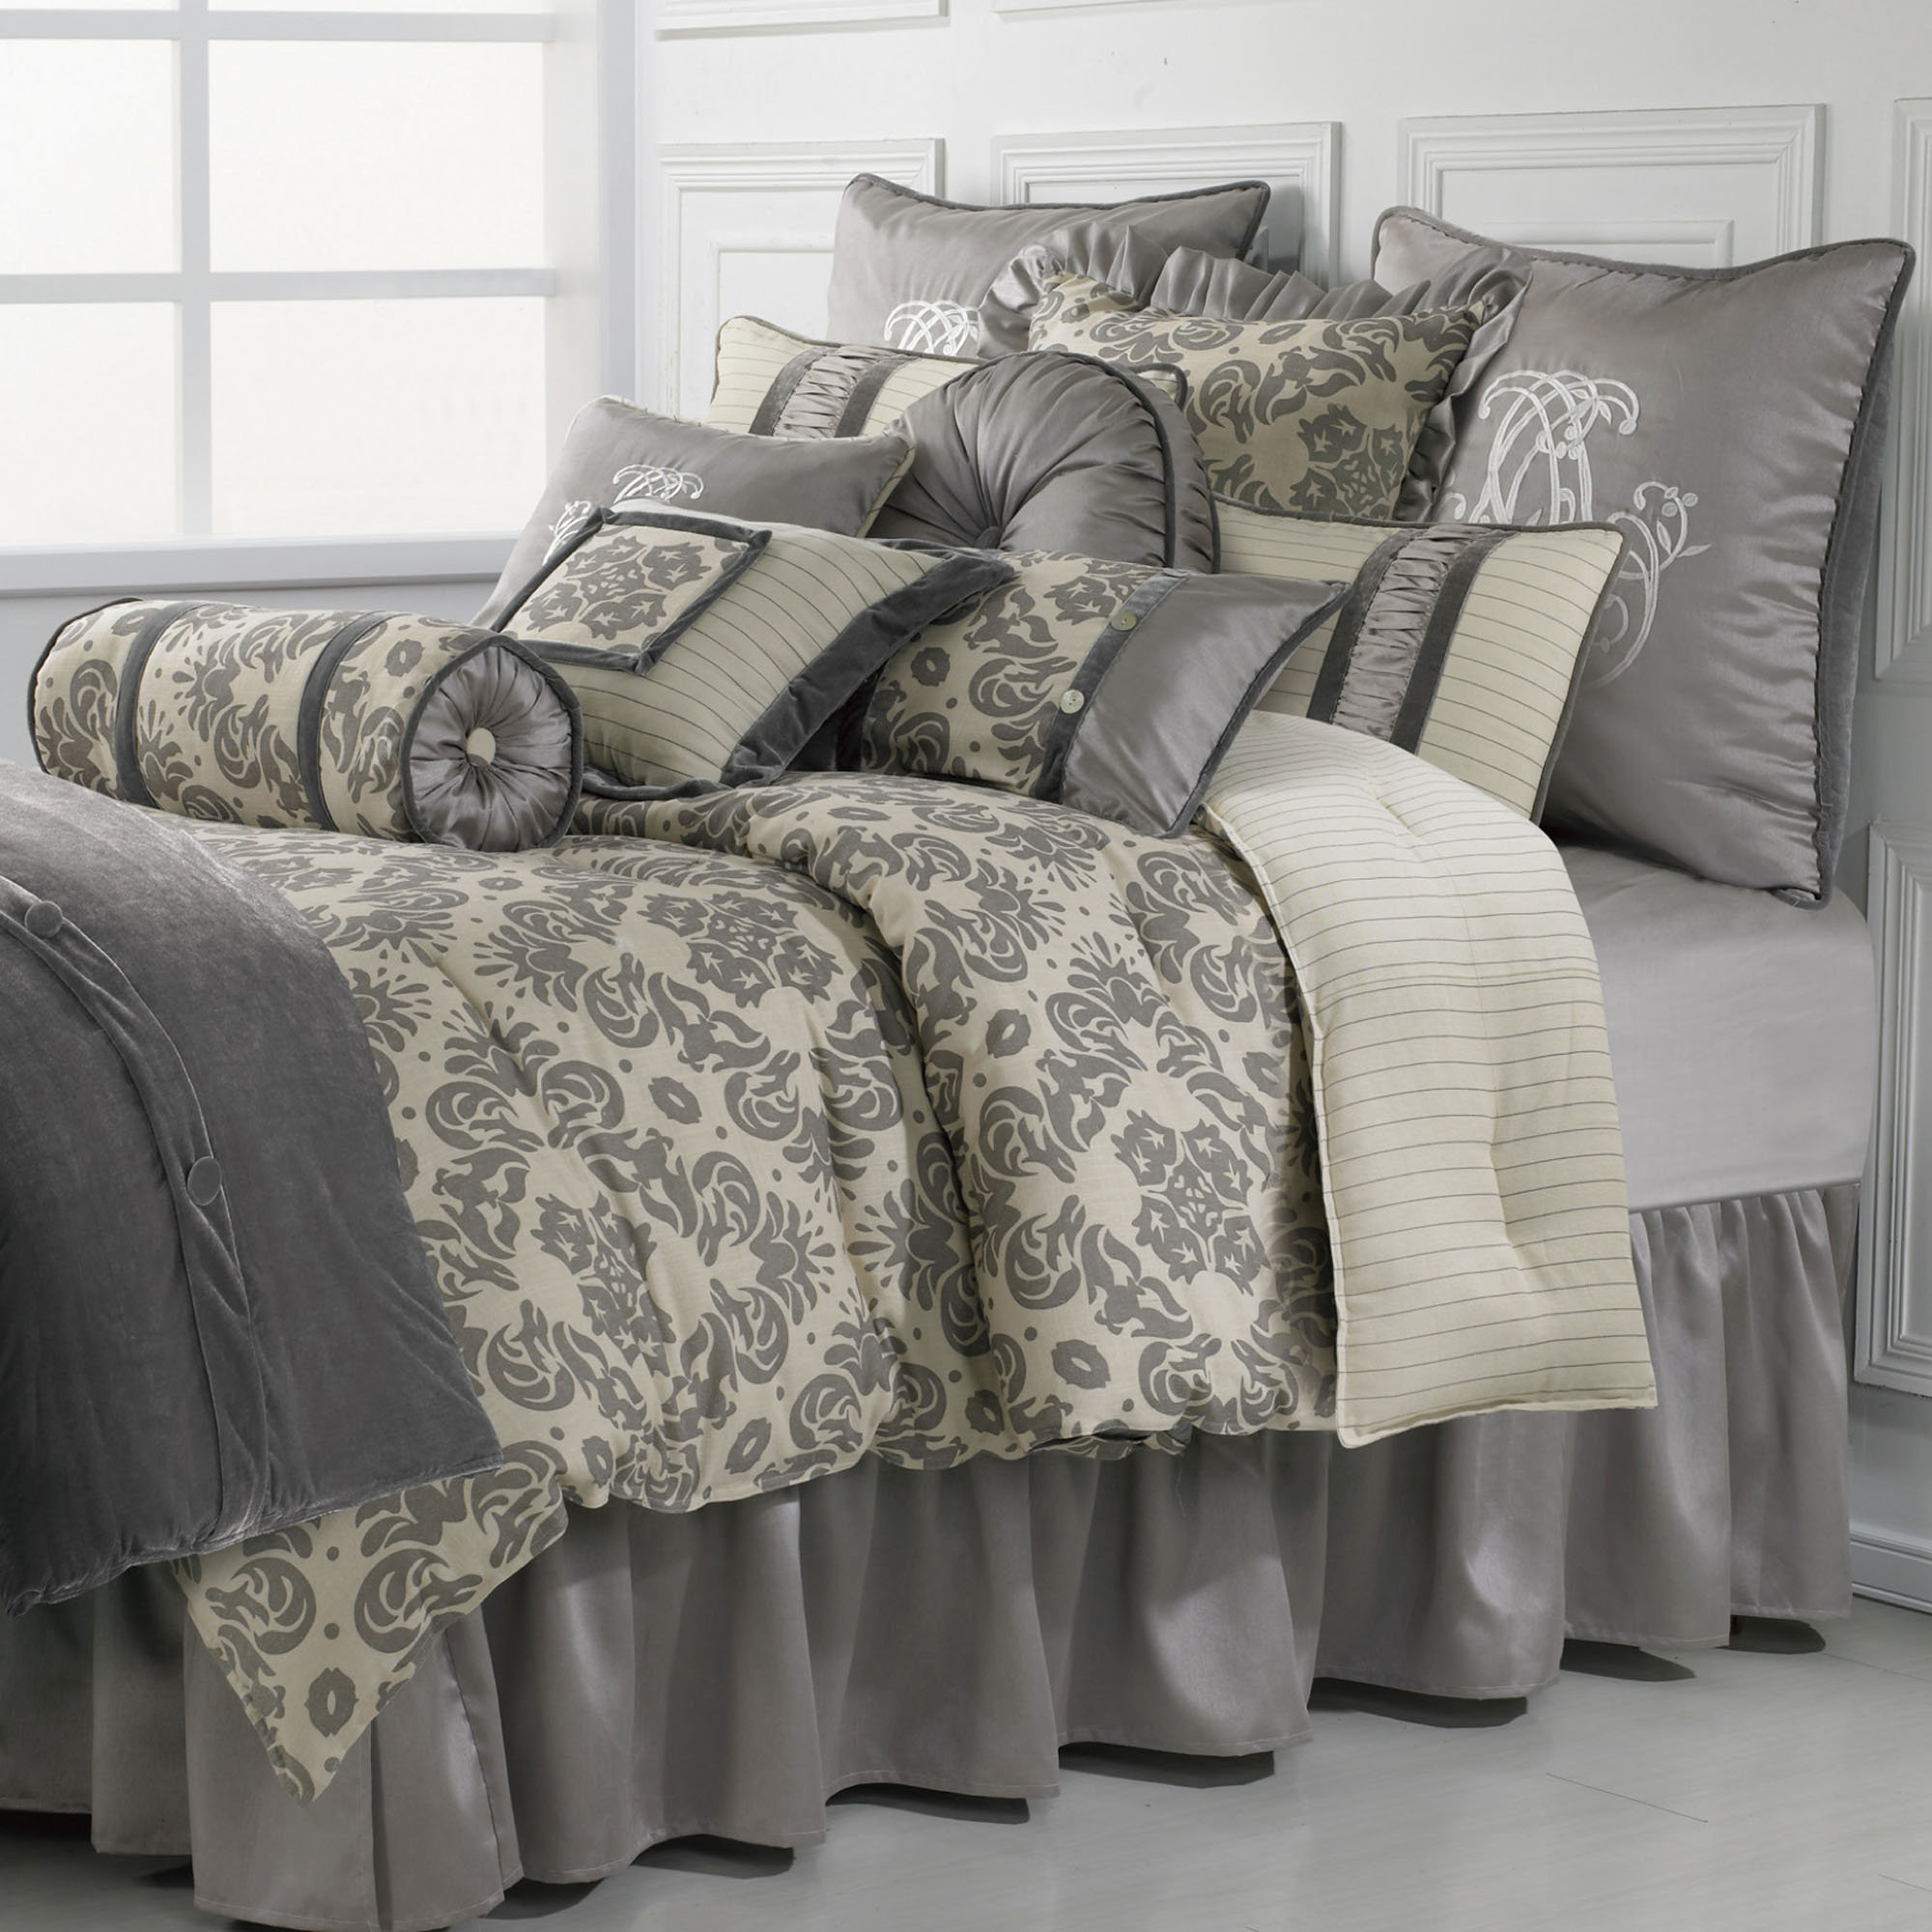 Amazing damask bedding for bed decorating ideas with damask bedding set and damask crib bedding